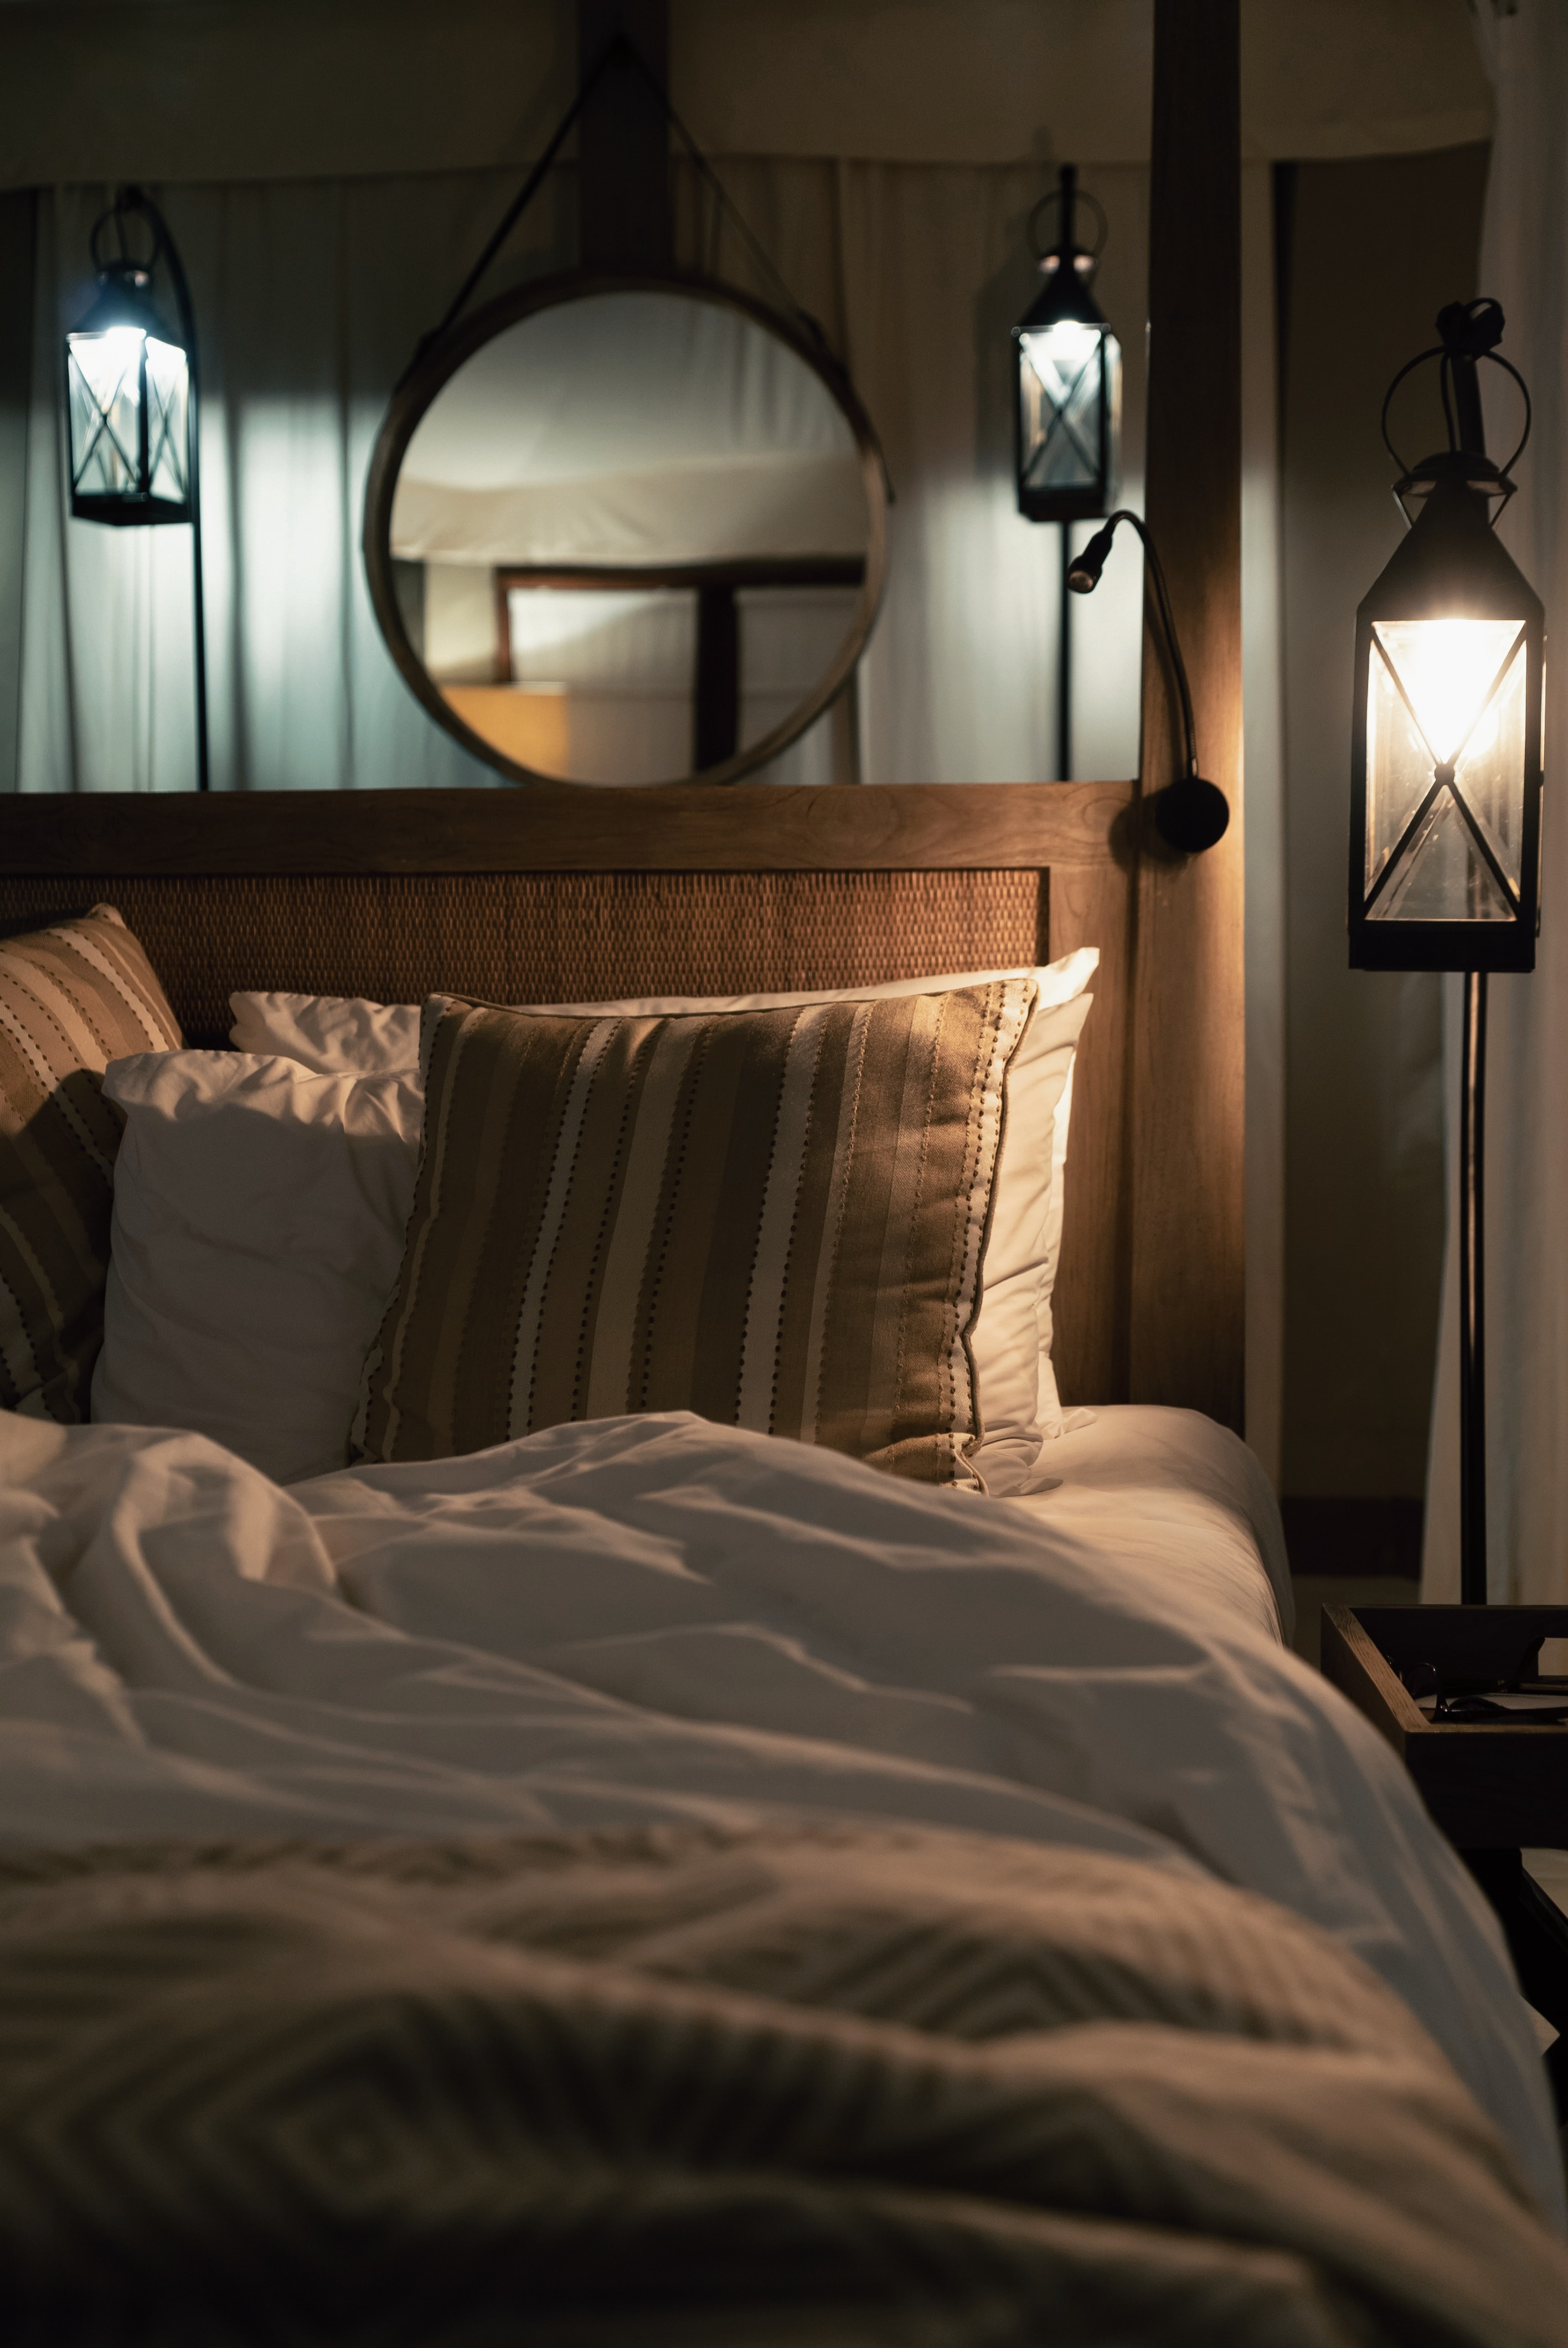 multicolored pillows on bed and lighted pendant lamp inside room